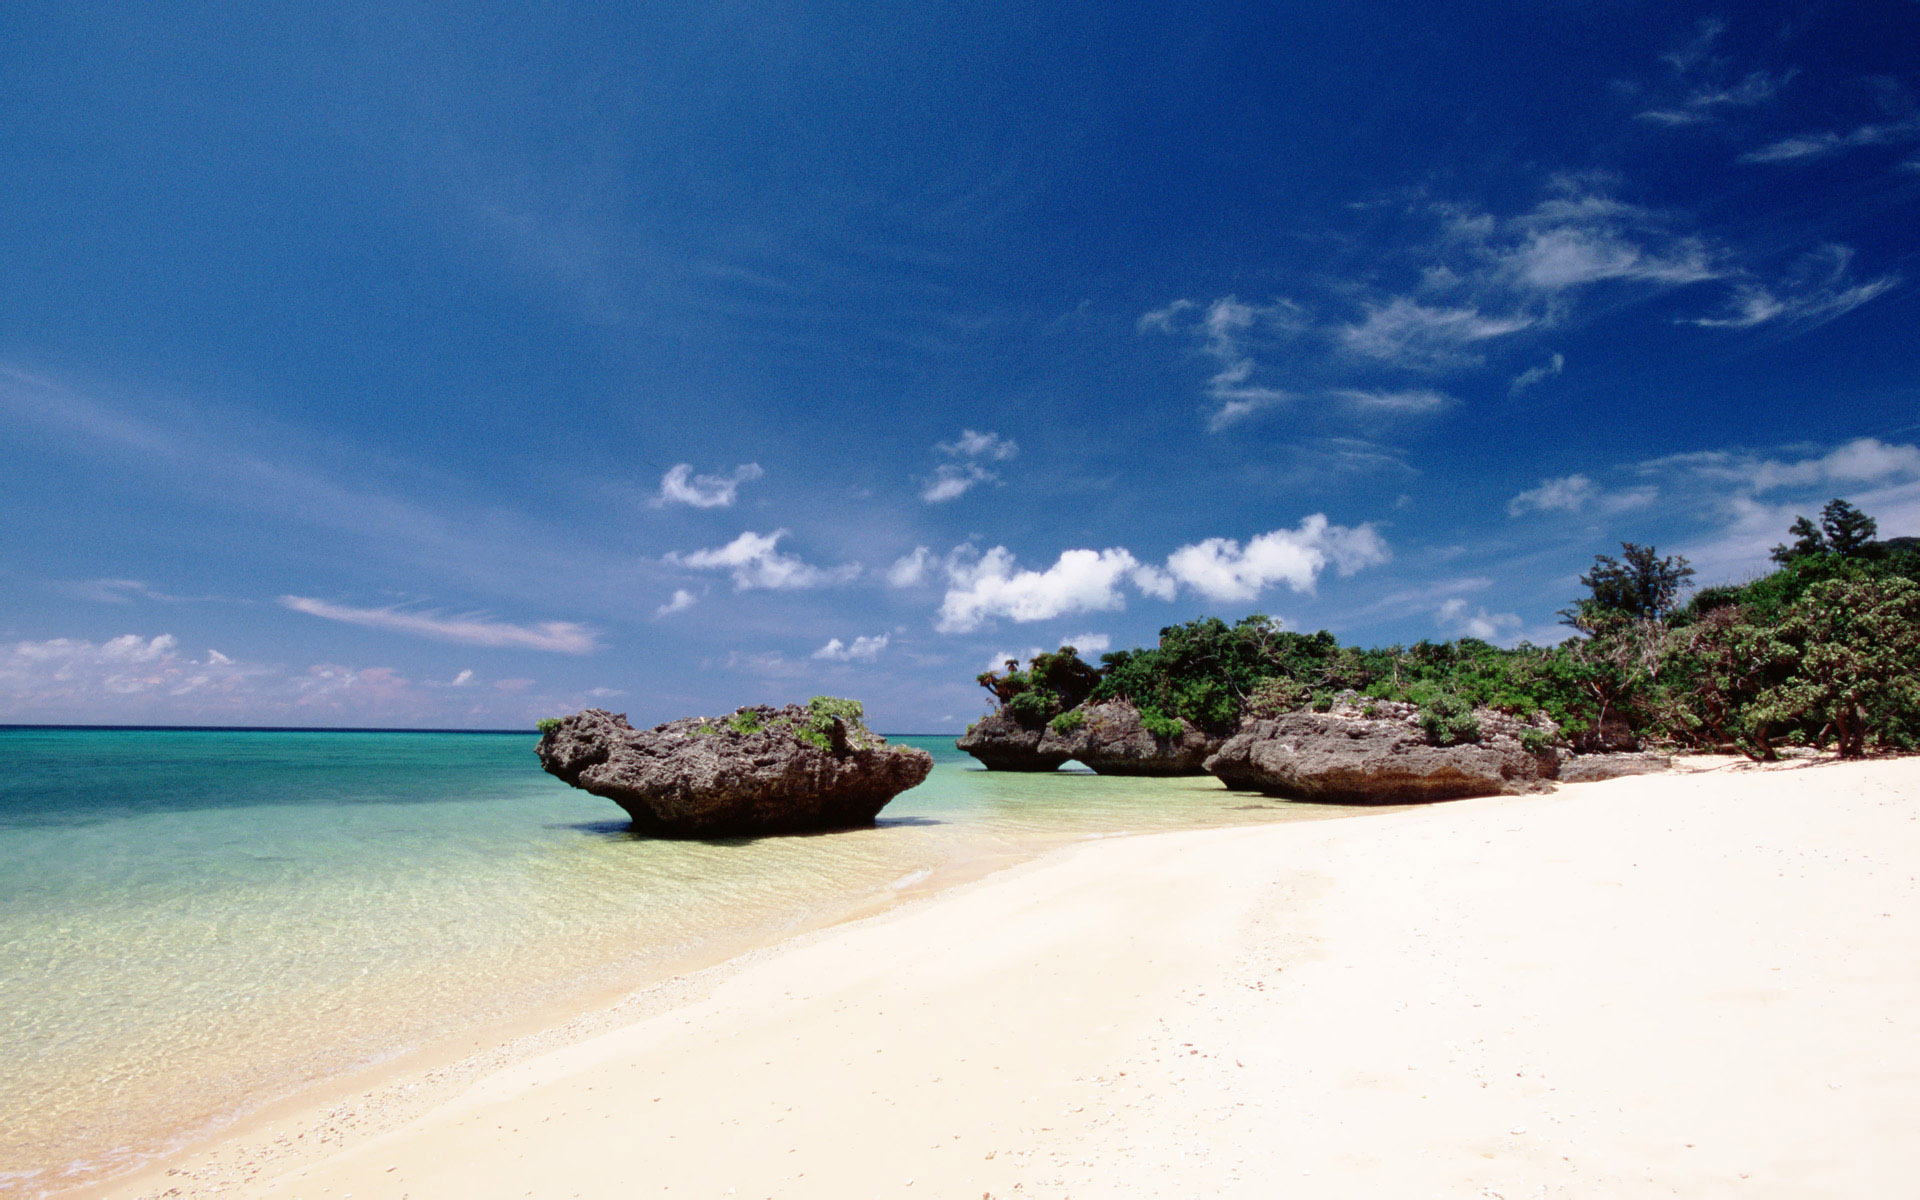 Okinawa Japan  City pictures : Japan Okinawa Island Beaches Wallpapers Okinawa tourist attractions ...